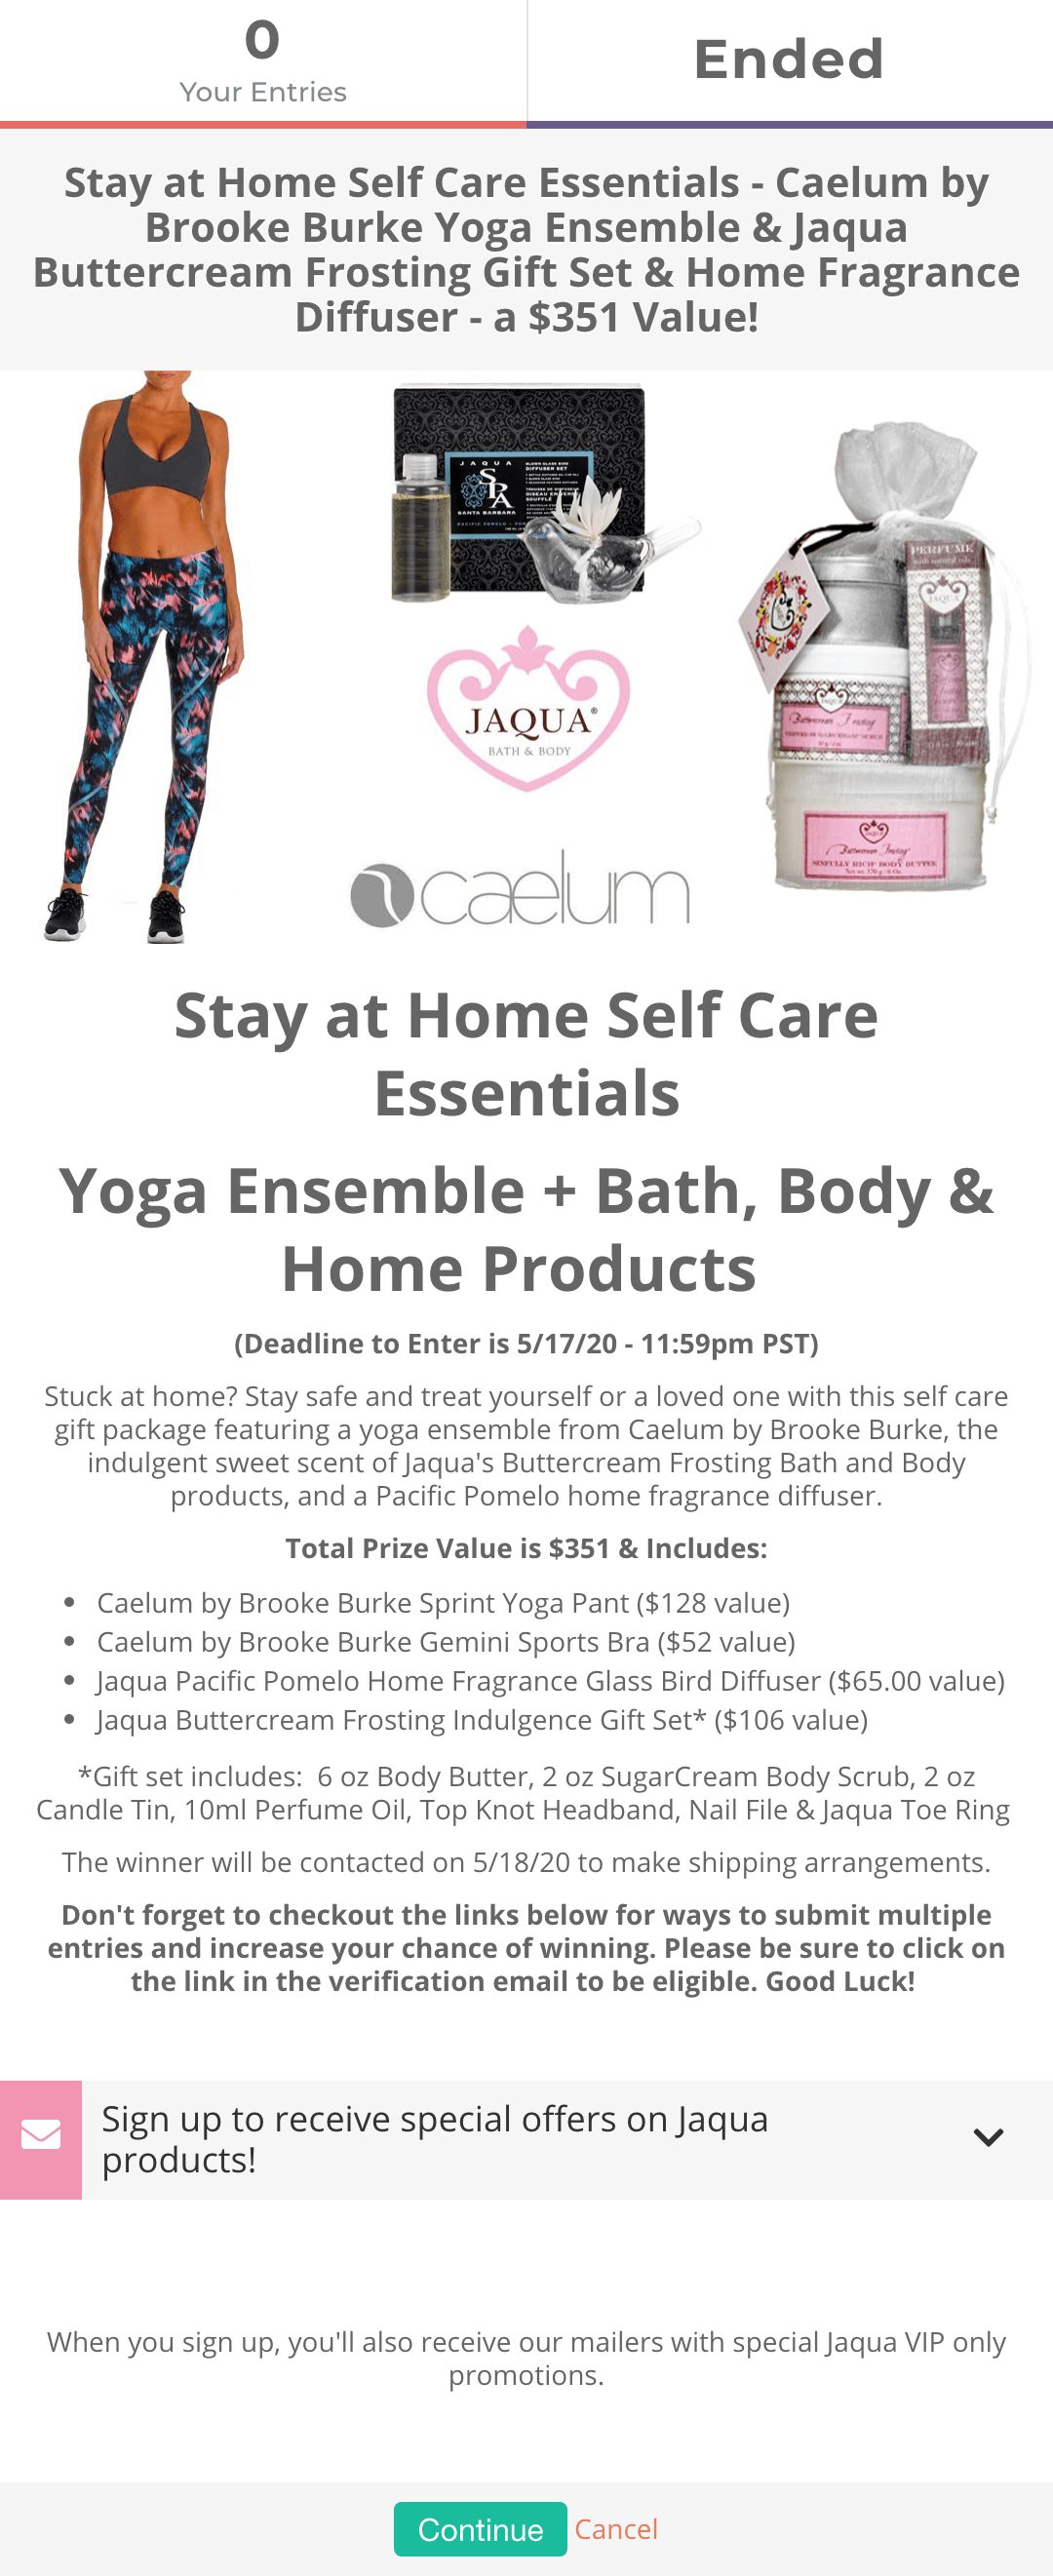 Stay At Home Self-Care giveaway campaign